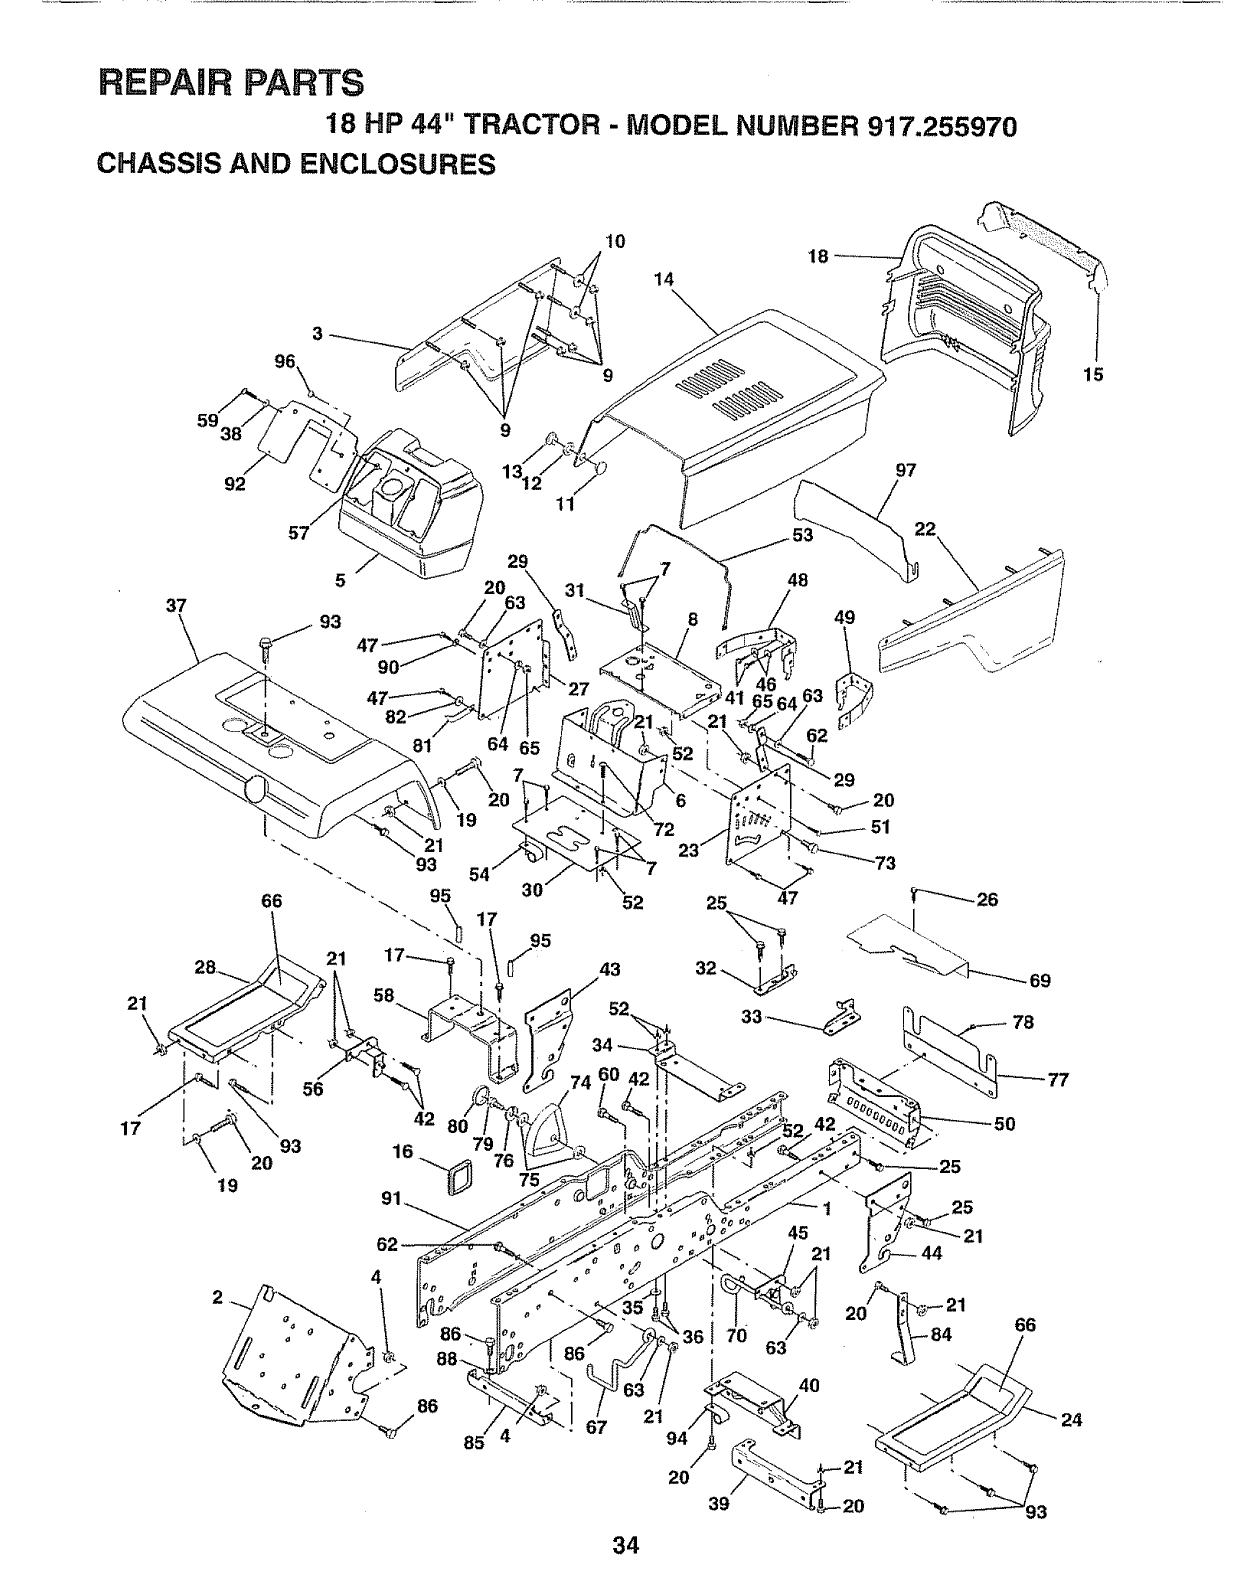 Page 34 of Sears Lawn Mower 917.25597 User Guide